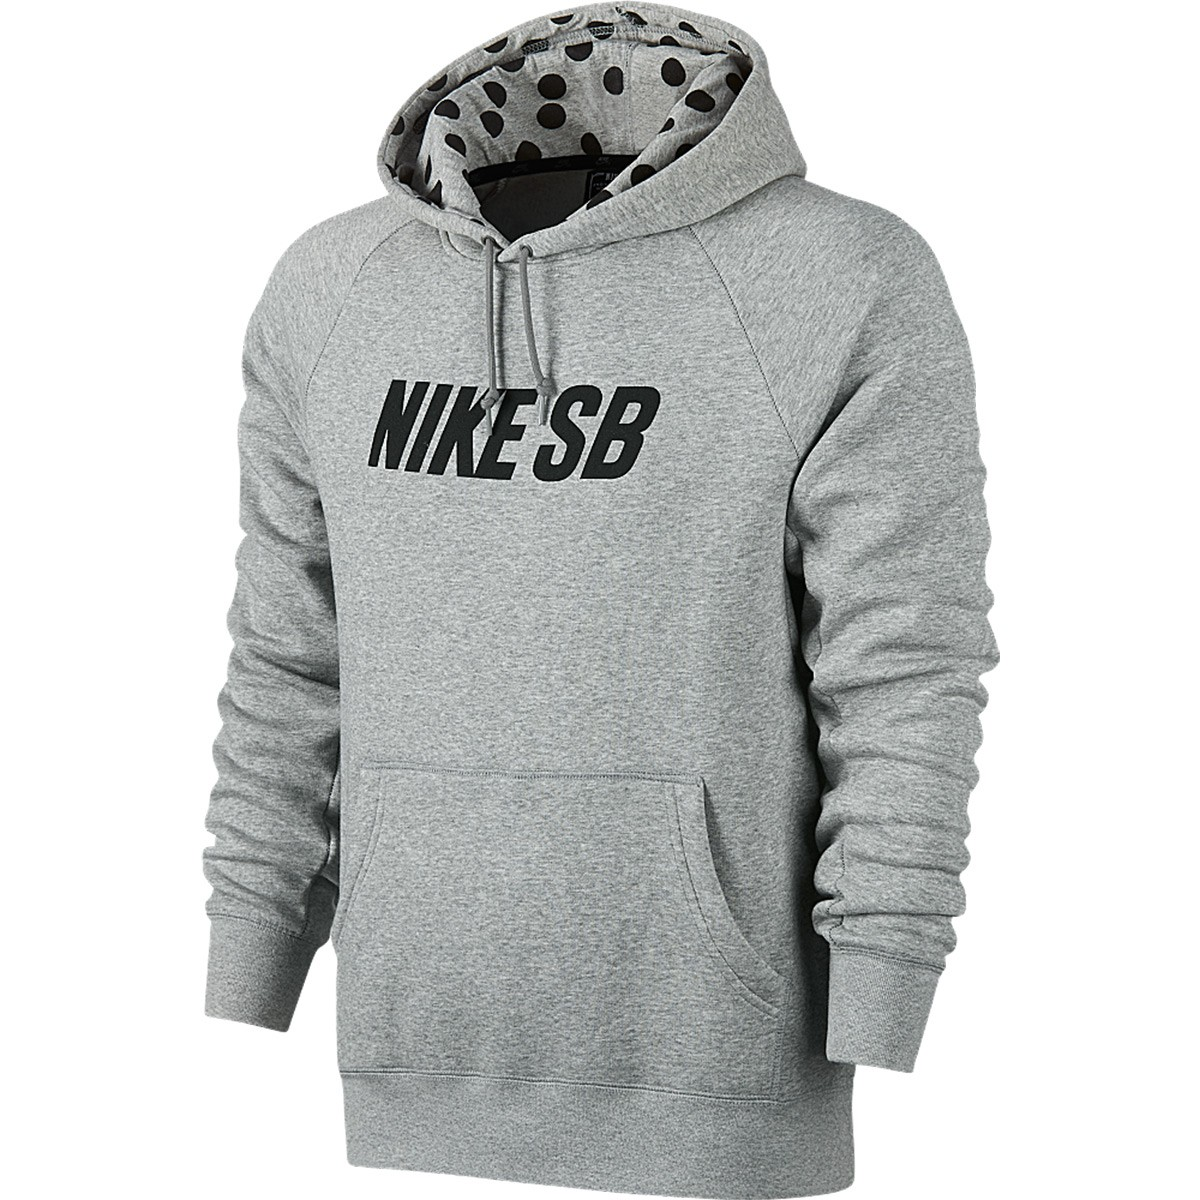 SB Icon Polka Dot Pullover Hoodie Sweatshirt - Dark Grey Heather/Black